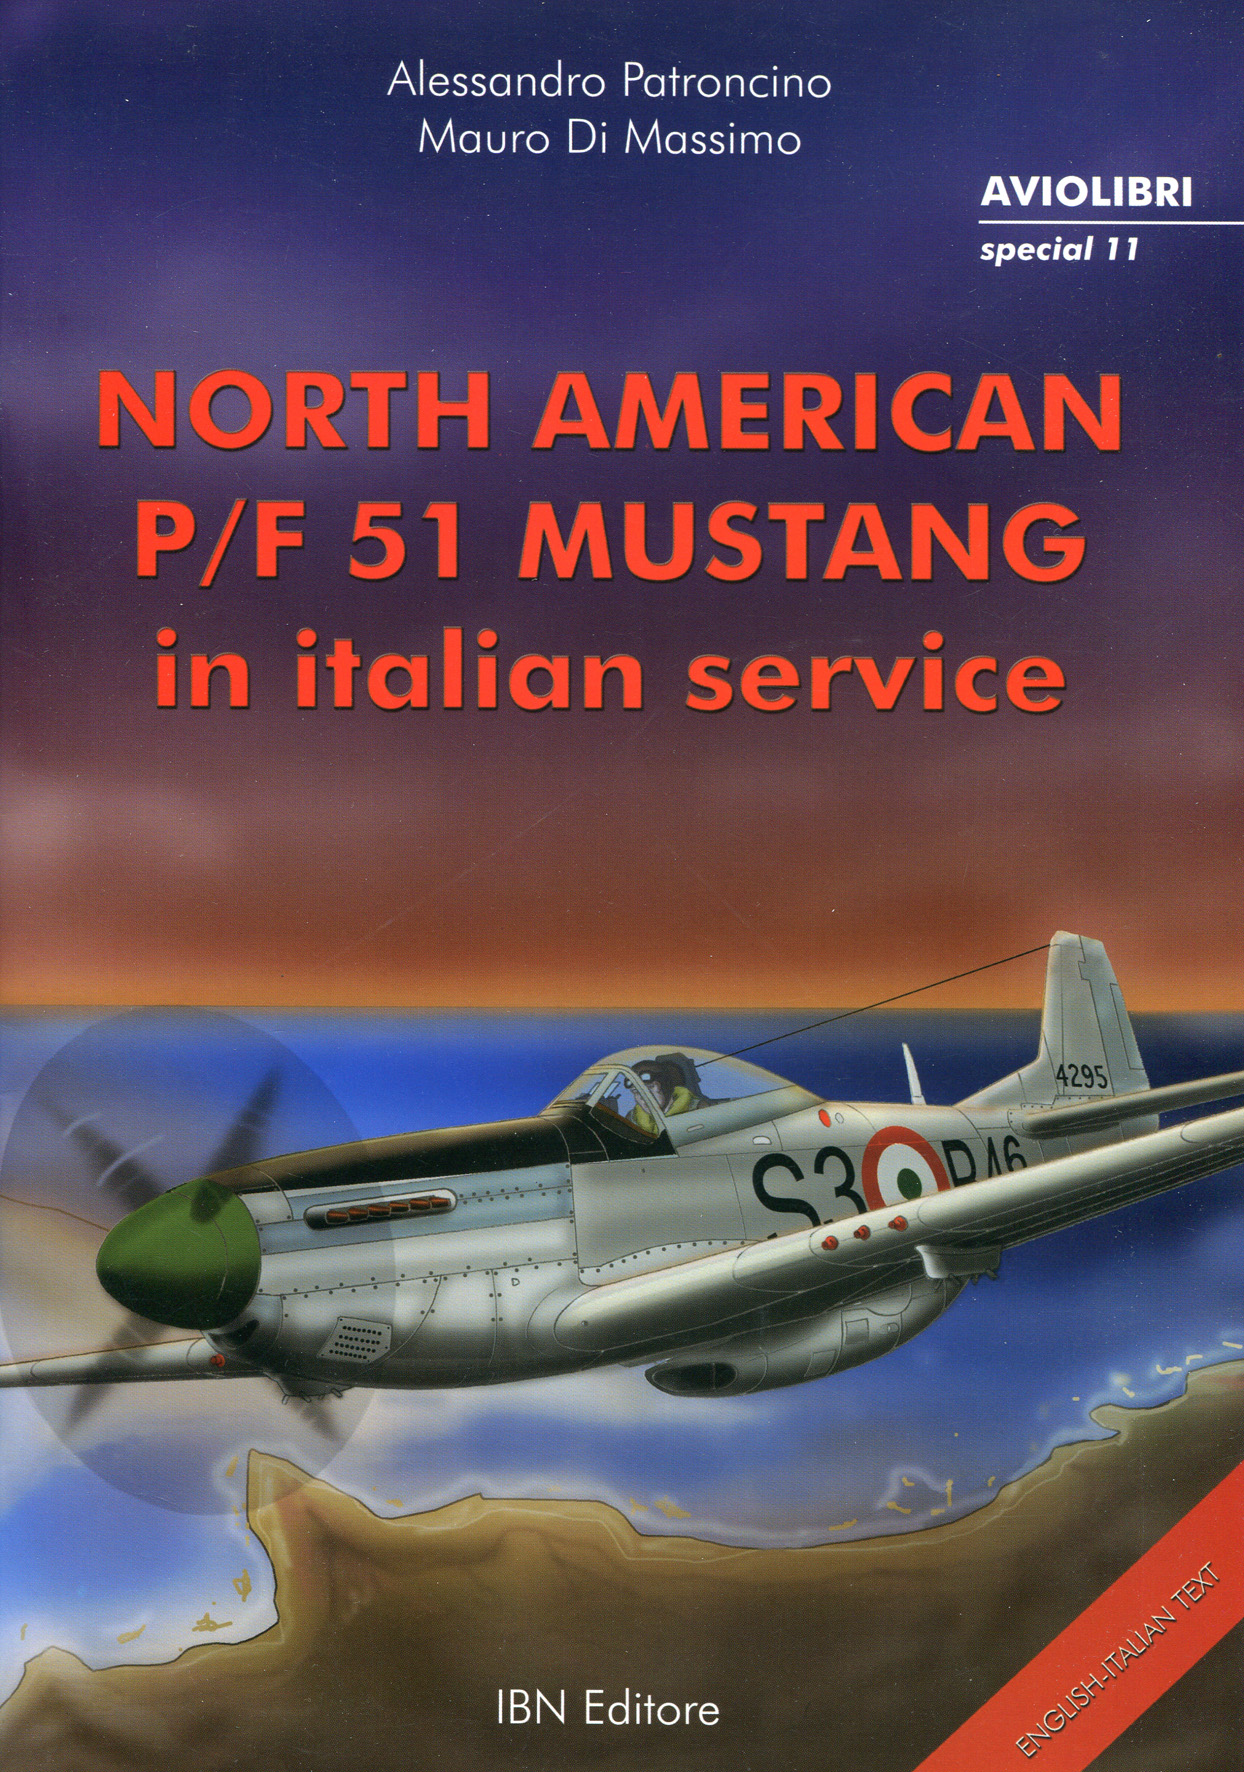 North American P/F 51 Mustang in italian service